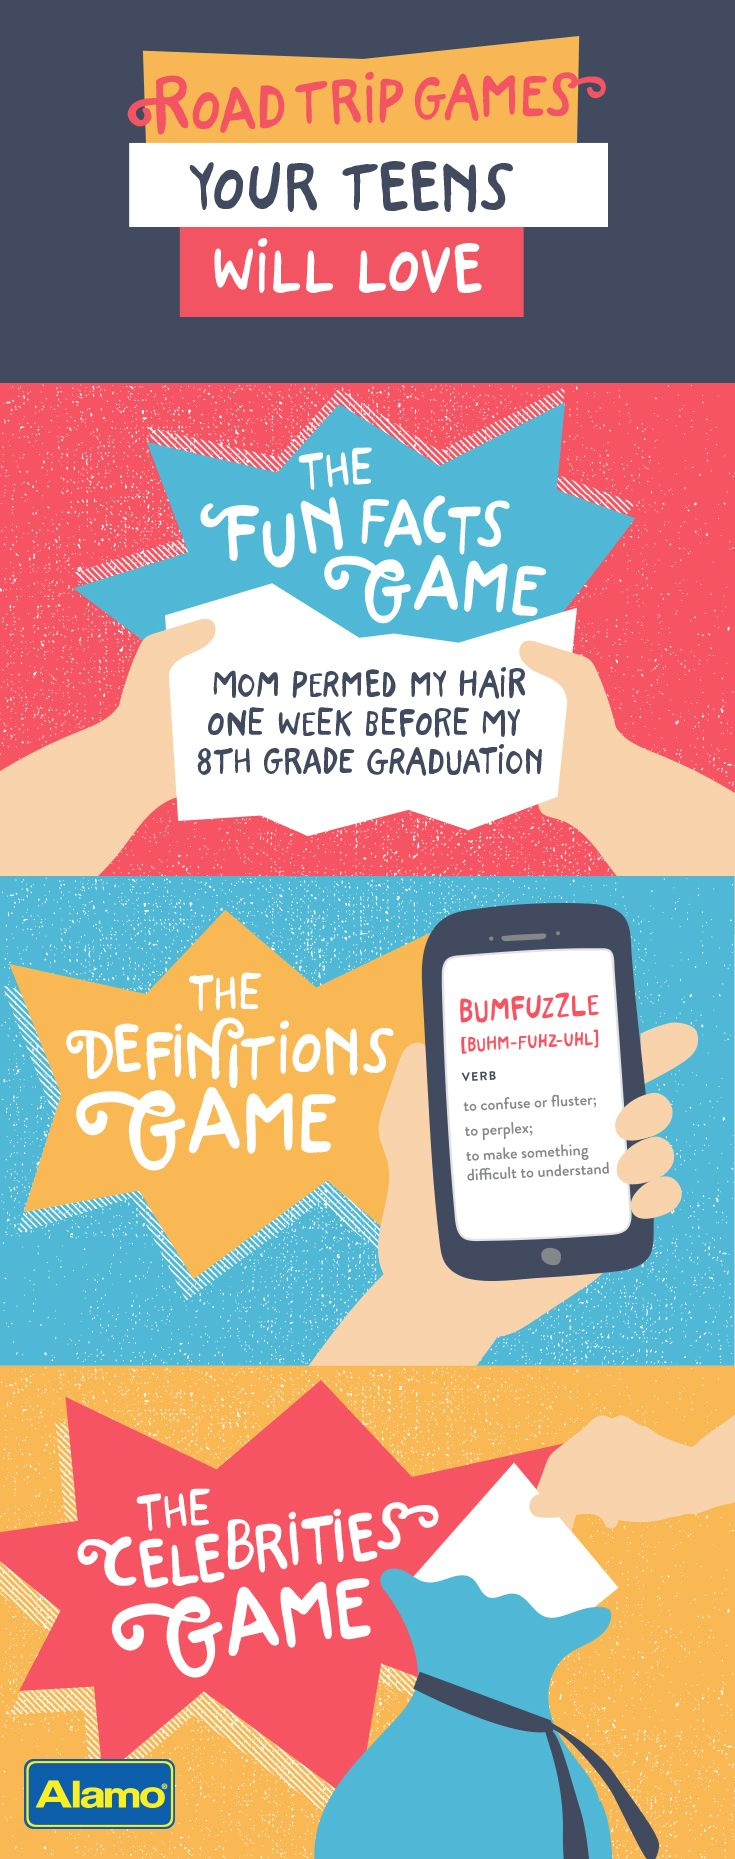 Do you have a road trip coming up? Make memories along the way with these three teen-friendly road trip games. They're so much fun your family may even forget they brought headphones.